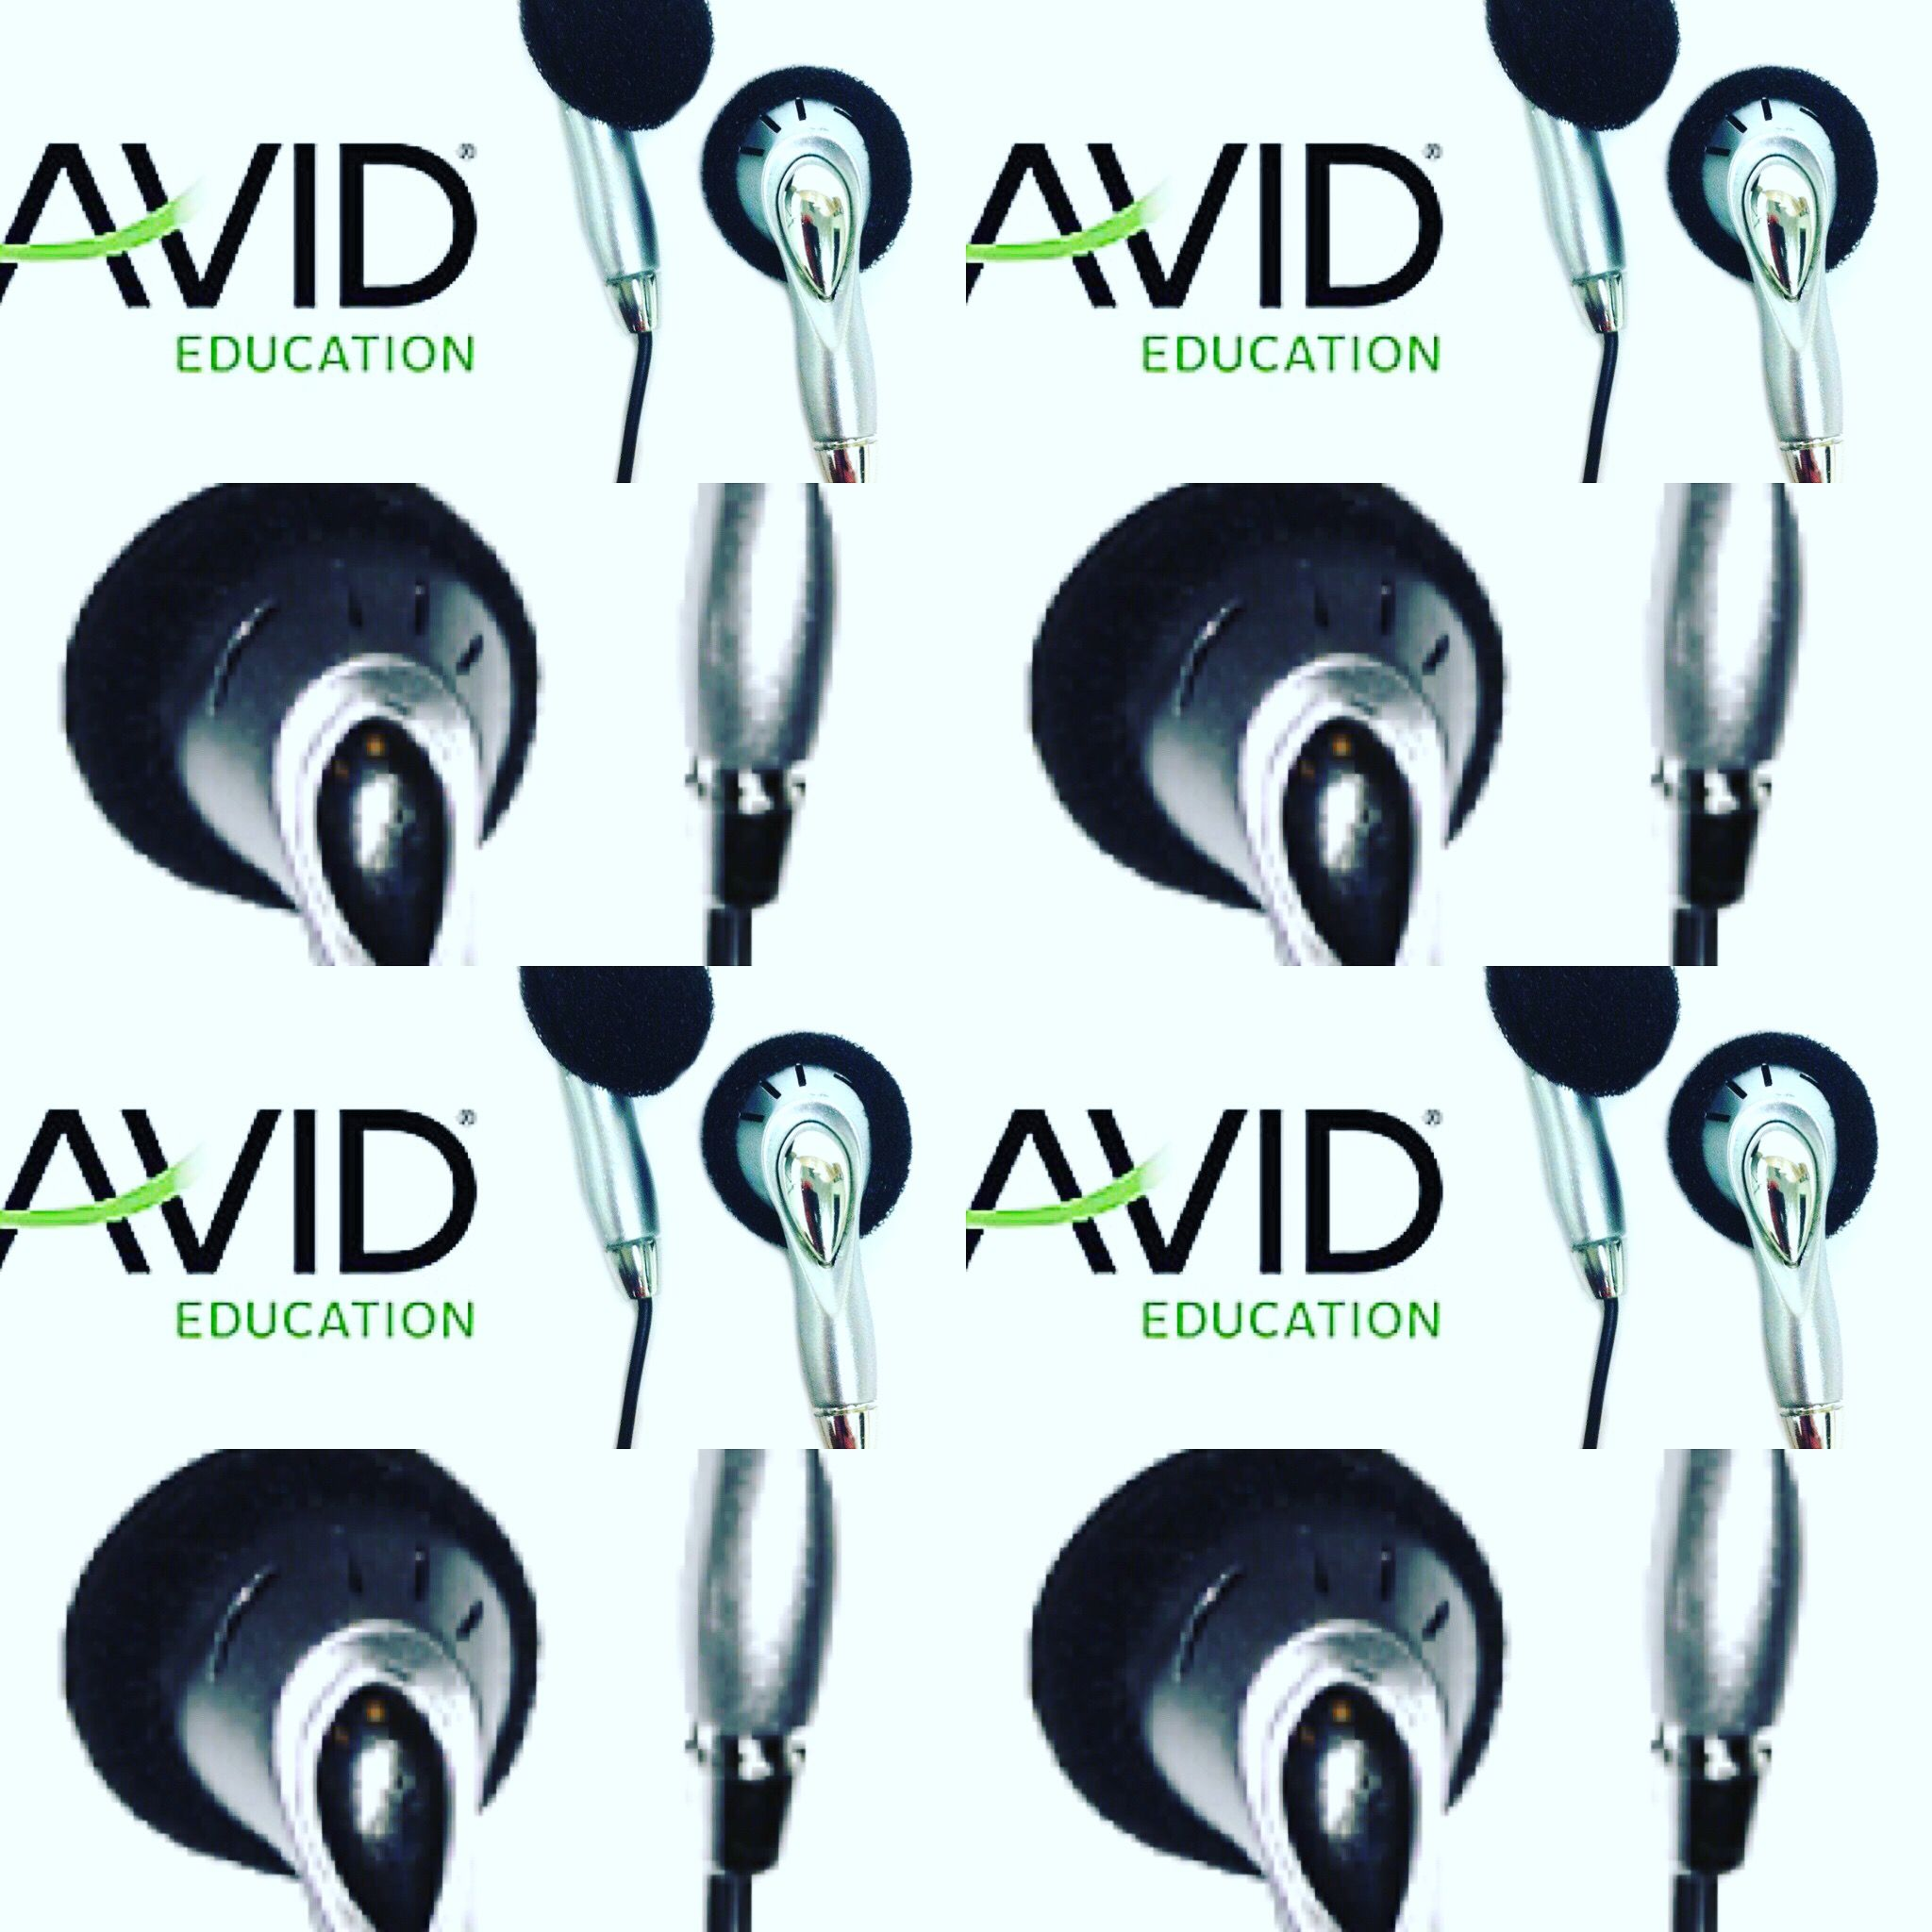 AVID TT3 DISPOSABLE STEREO SILVER EARBUDS 6 foot